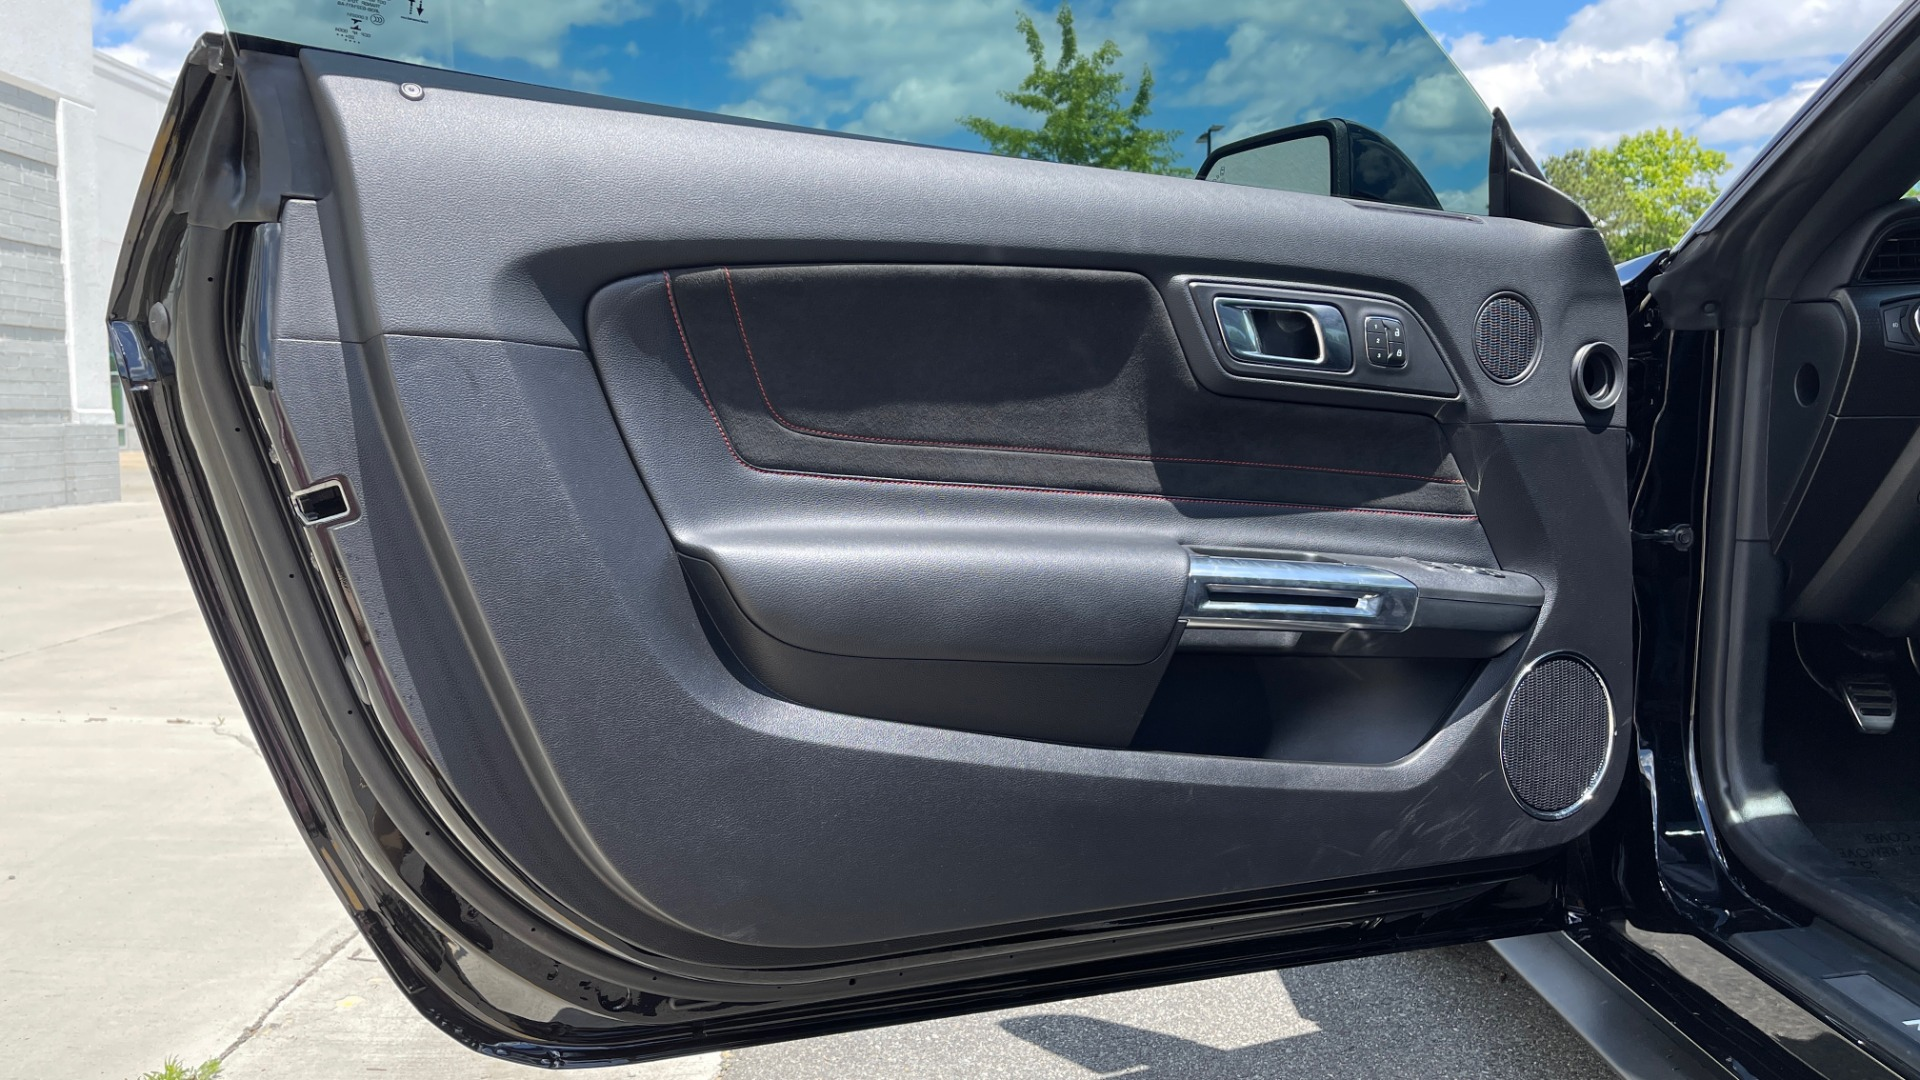 Used 2020 Ford MUSTANG GT PREMIUM / CALIFORNIA SPECIAL / 5.0L V8 / 6-SPD MAN for sale Sold at Formula Imports in Charlotte NC 28227 39